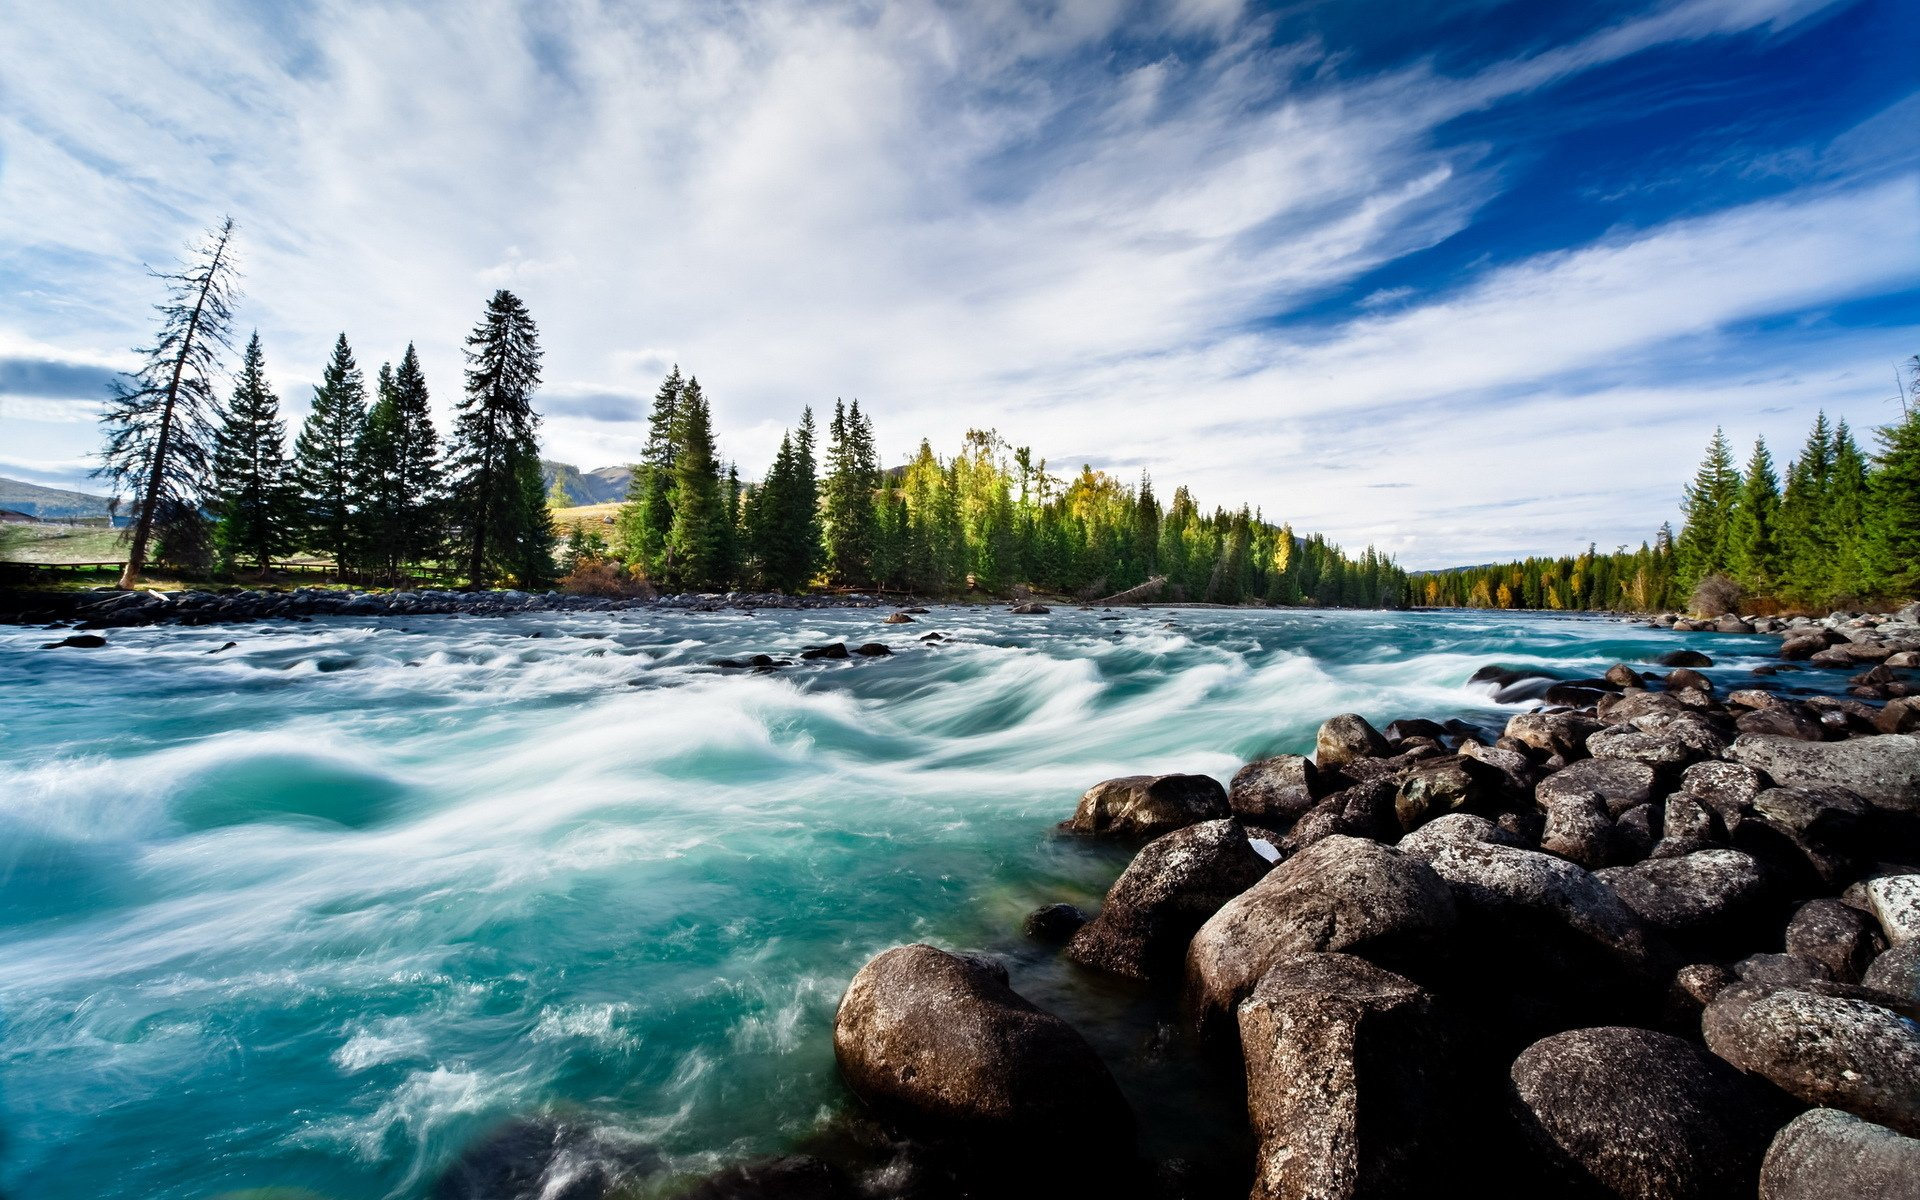 river Clean Water Round Stones Blue Sky Fan Of Clouds 1920x1200